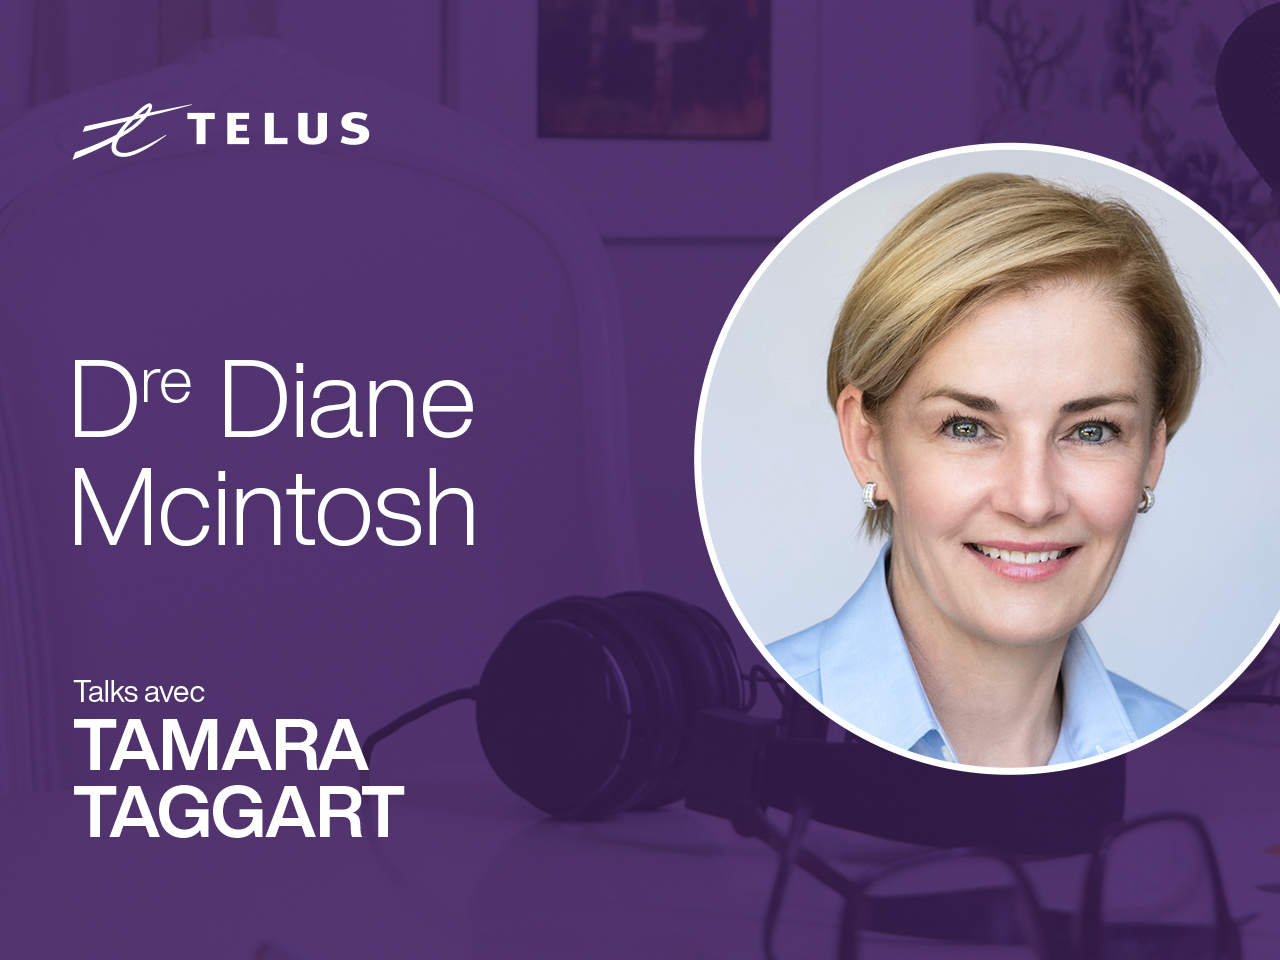 Dr. Diane McIntosh, TELUS' Chief Neuroscience Officer